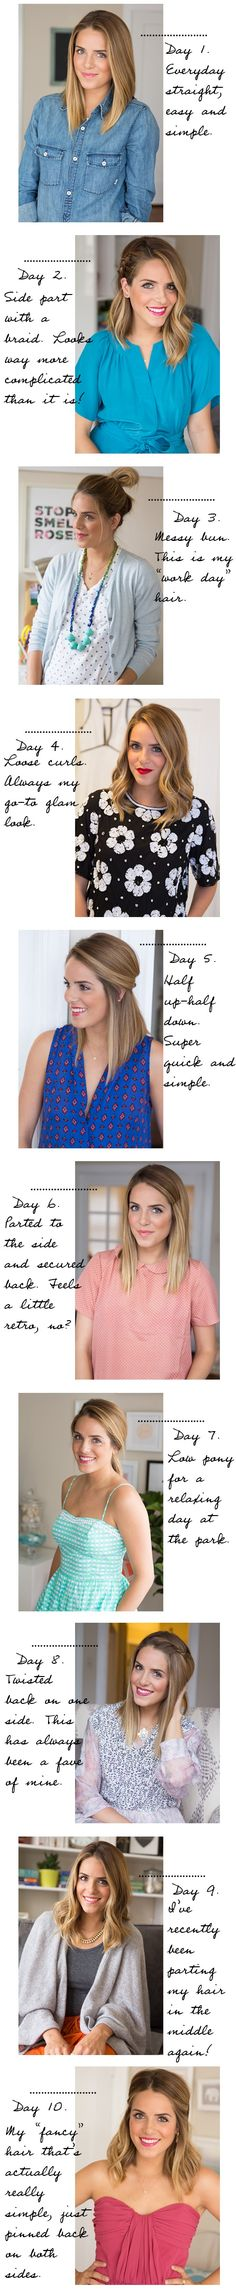 10 Days, 10 Ways to wear your hair.